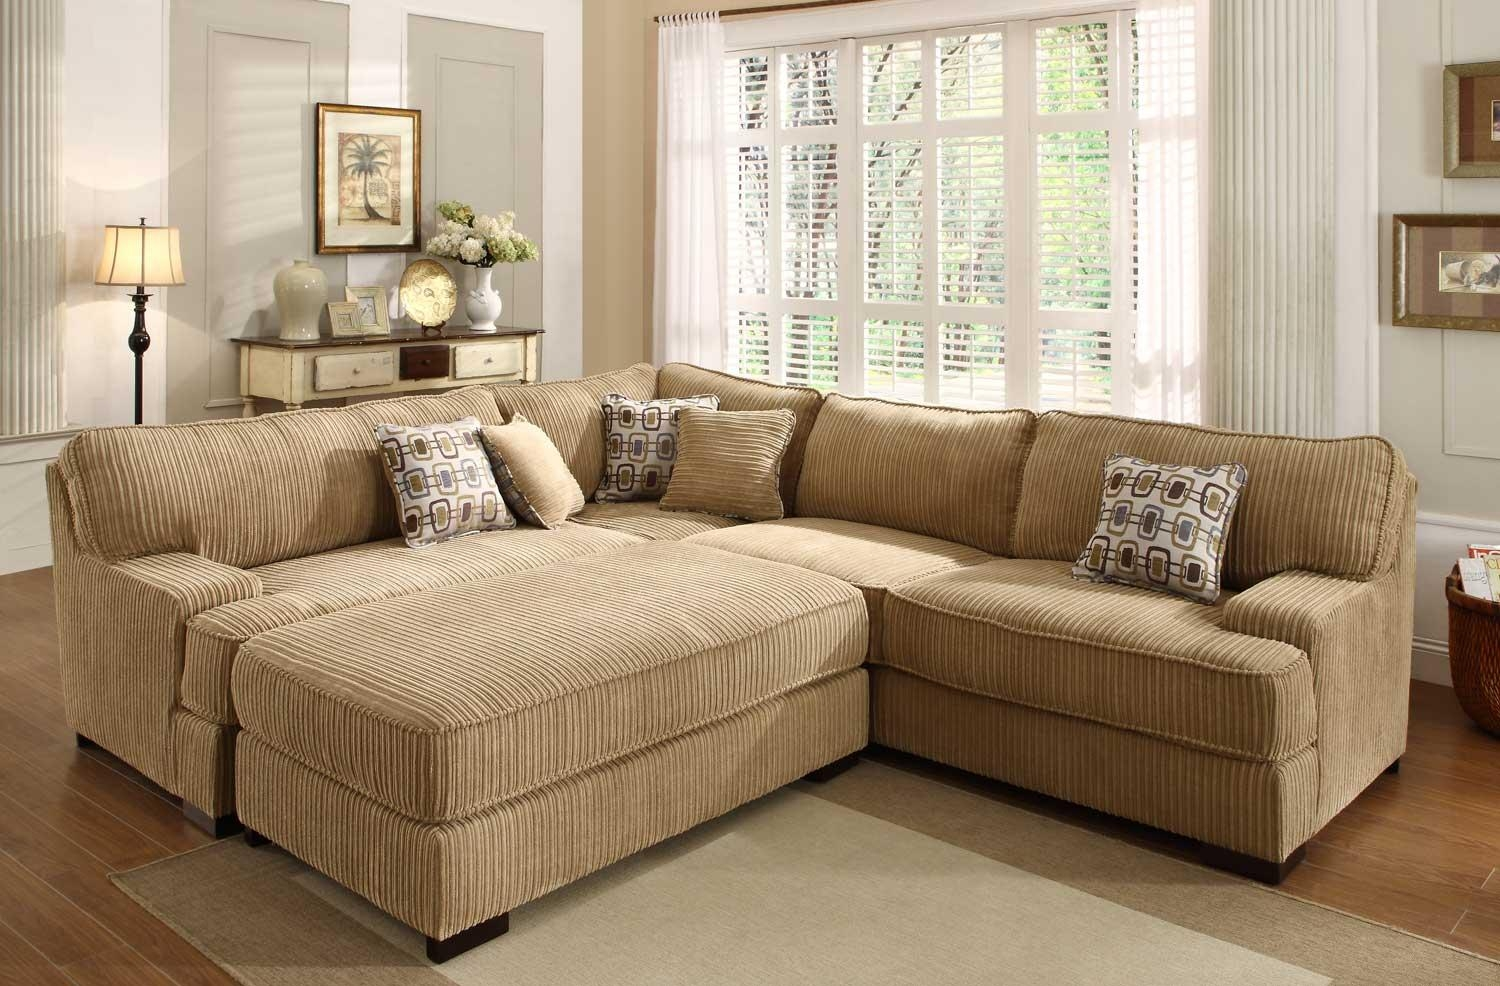 Sofas: Oversized Sofas | Sectional Sofa Bed | Oversized Sofa Chairs In Large Sofa Chairs (Image 20 of 20)